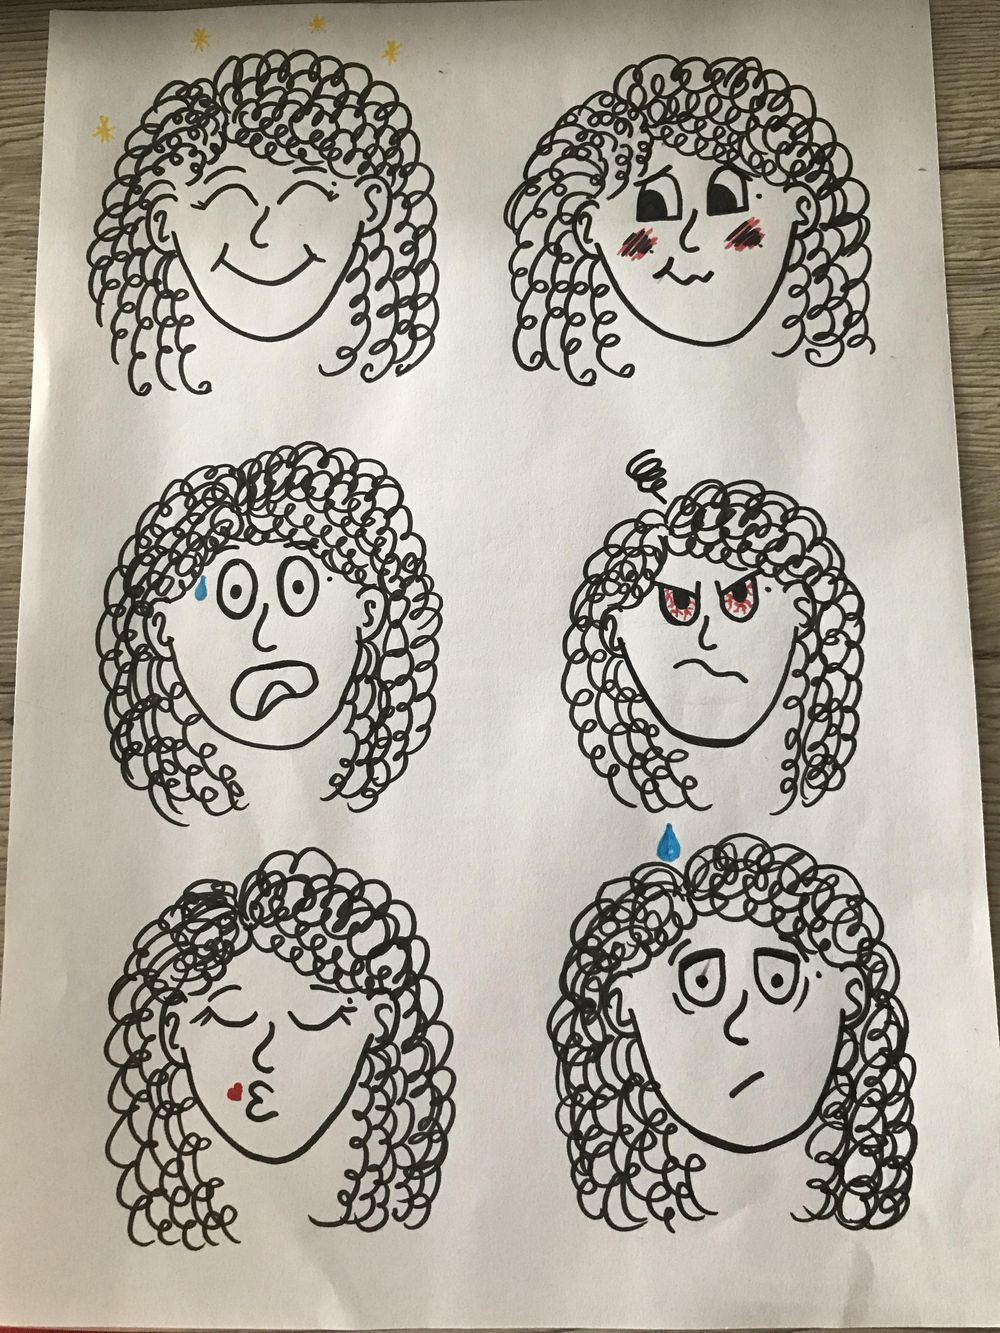 Cartooning, self portraits and stuff - image 2 - student project